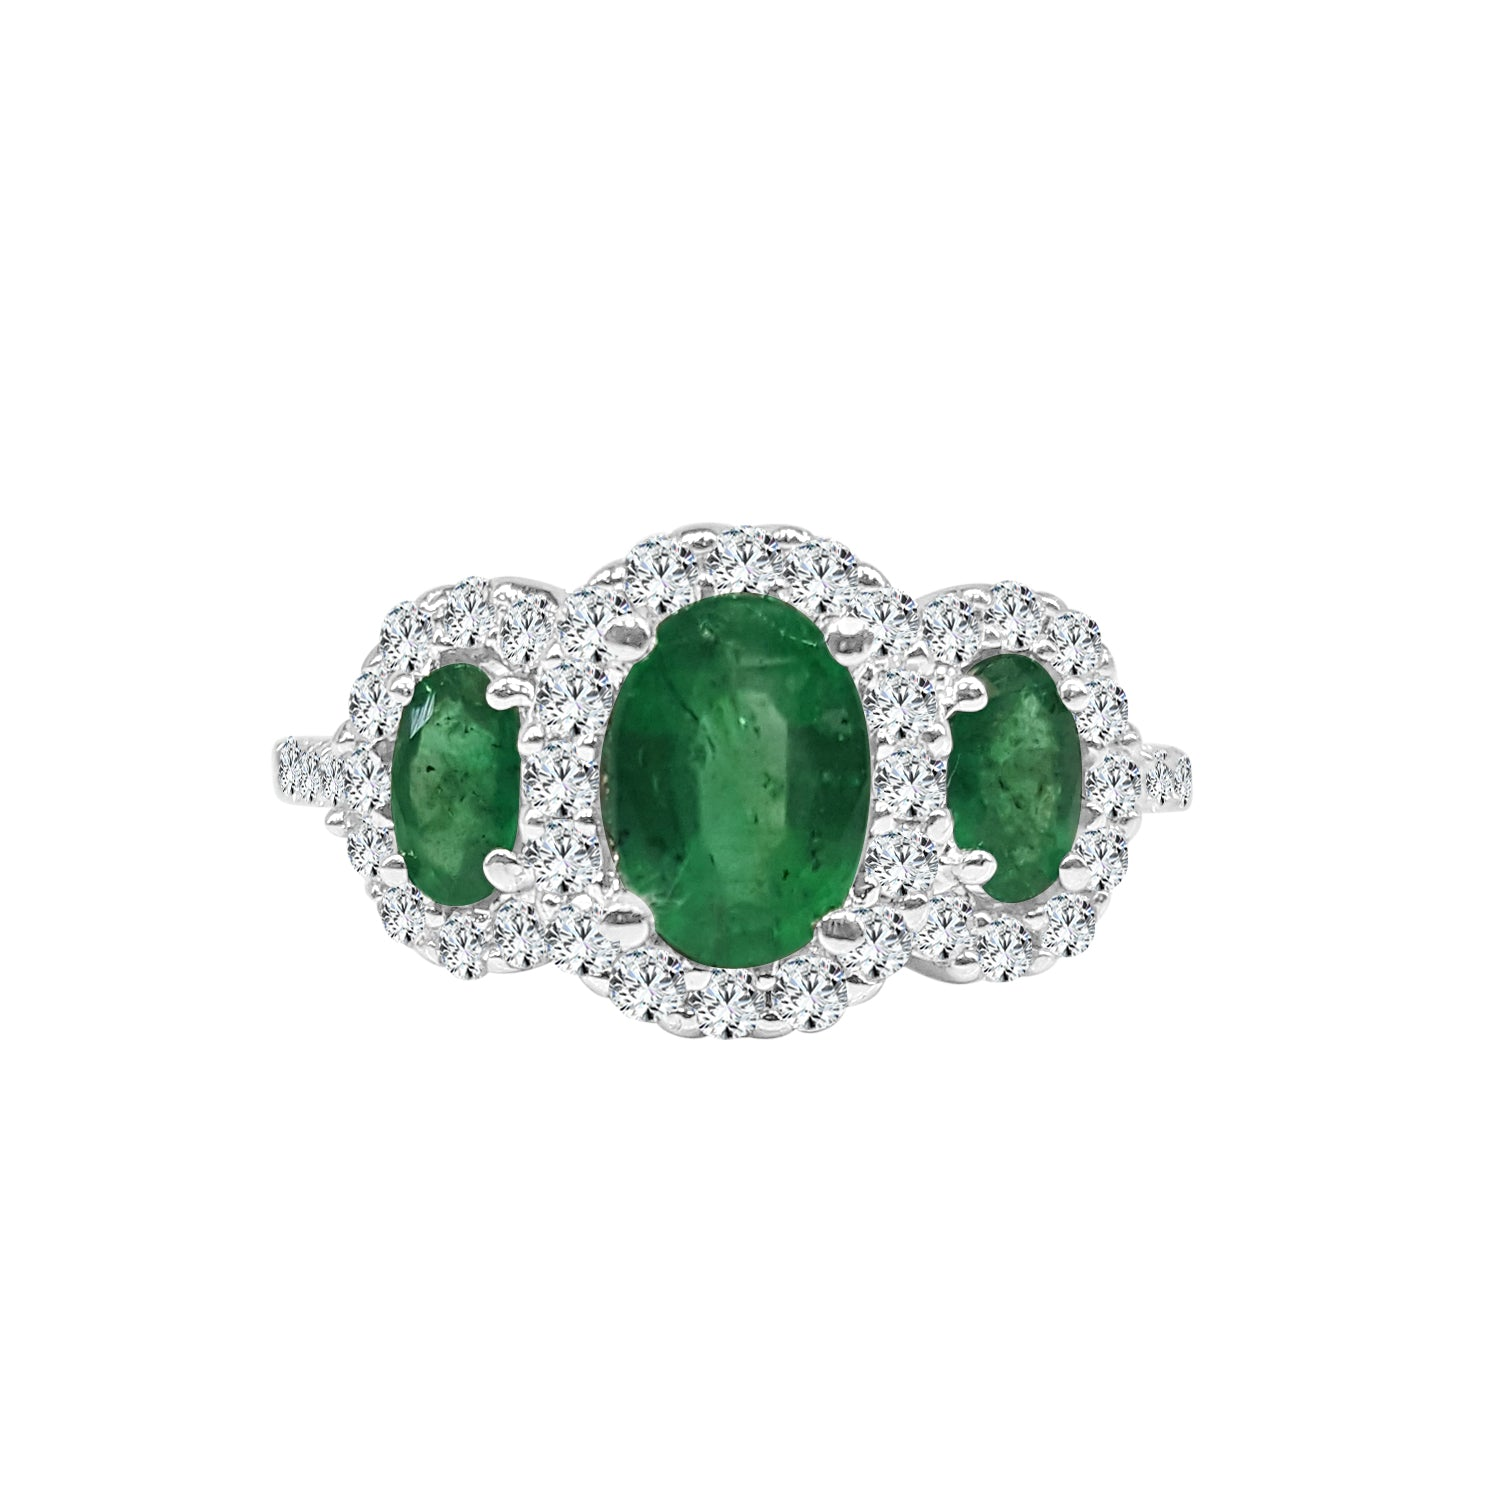 14 Karat White Gold 1.3 Emerald Ring